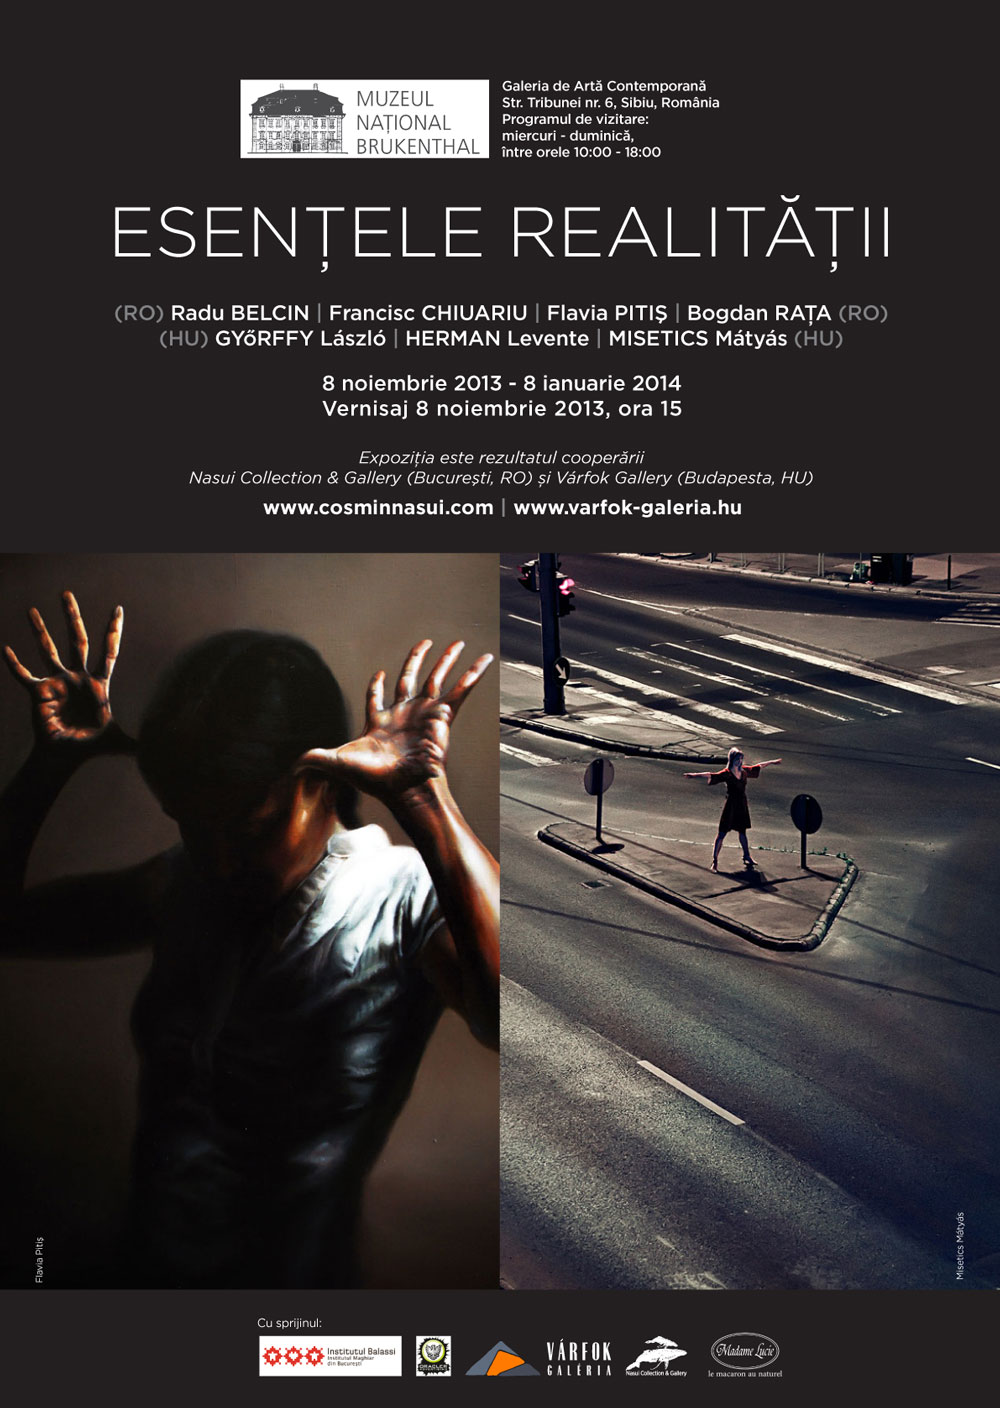 The-Essences-of-Reality,-Brukenthal-poster-RO